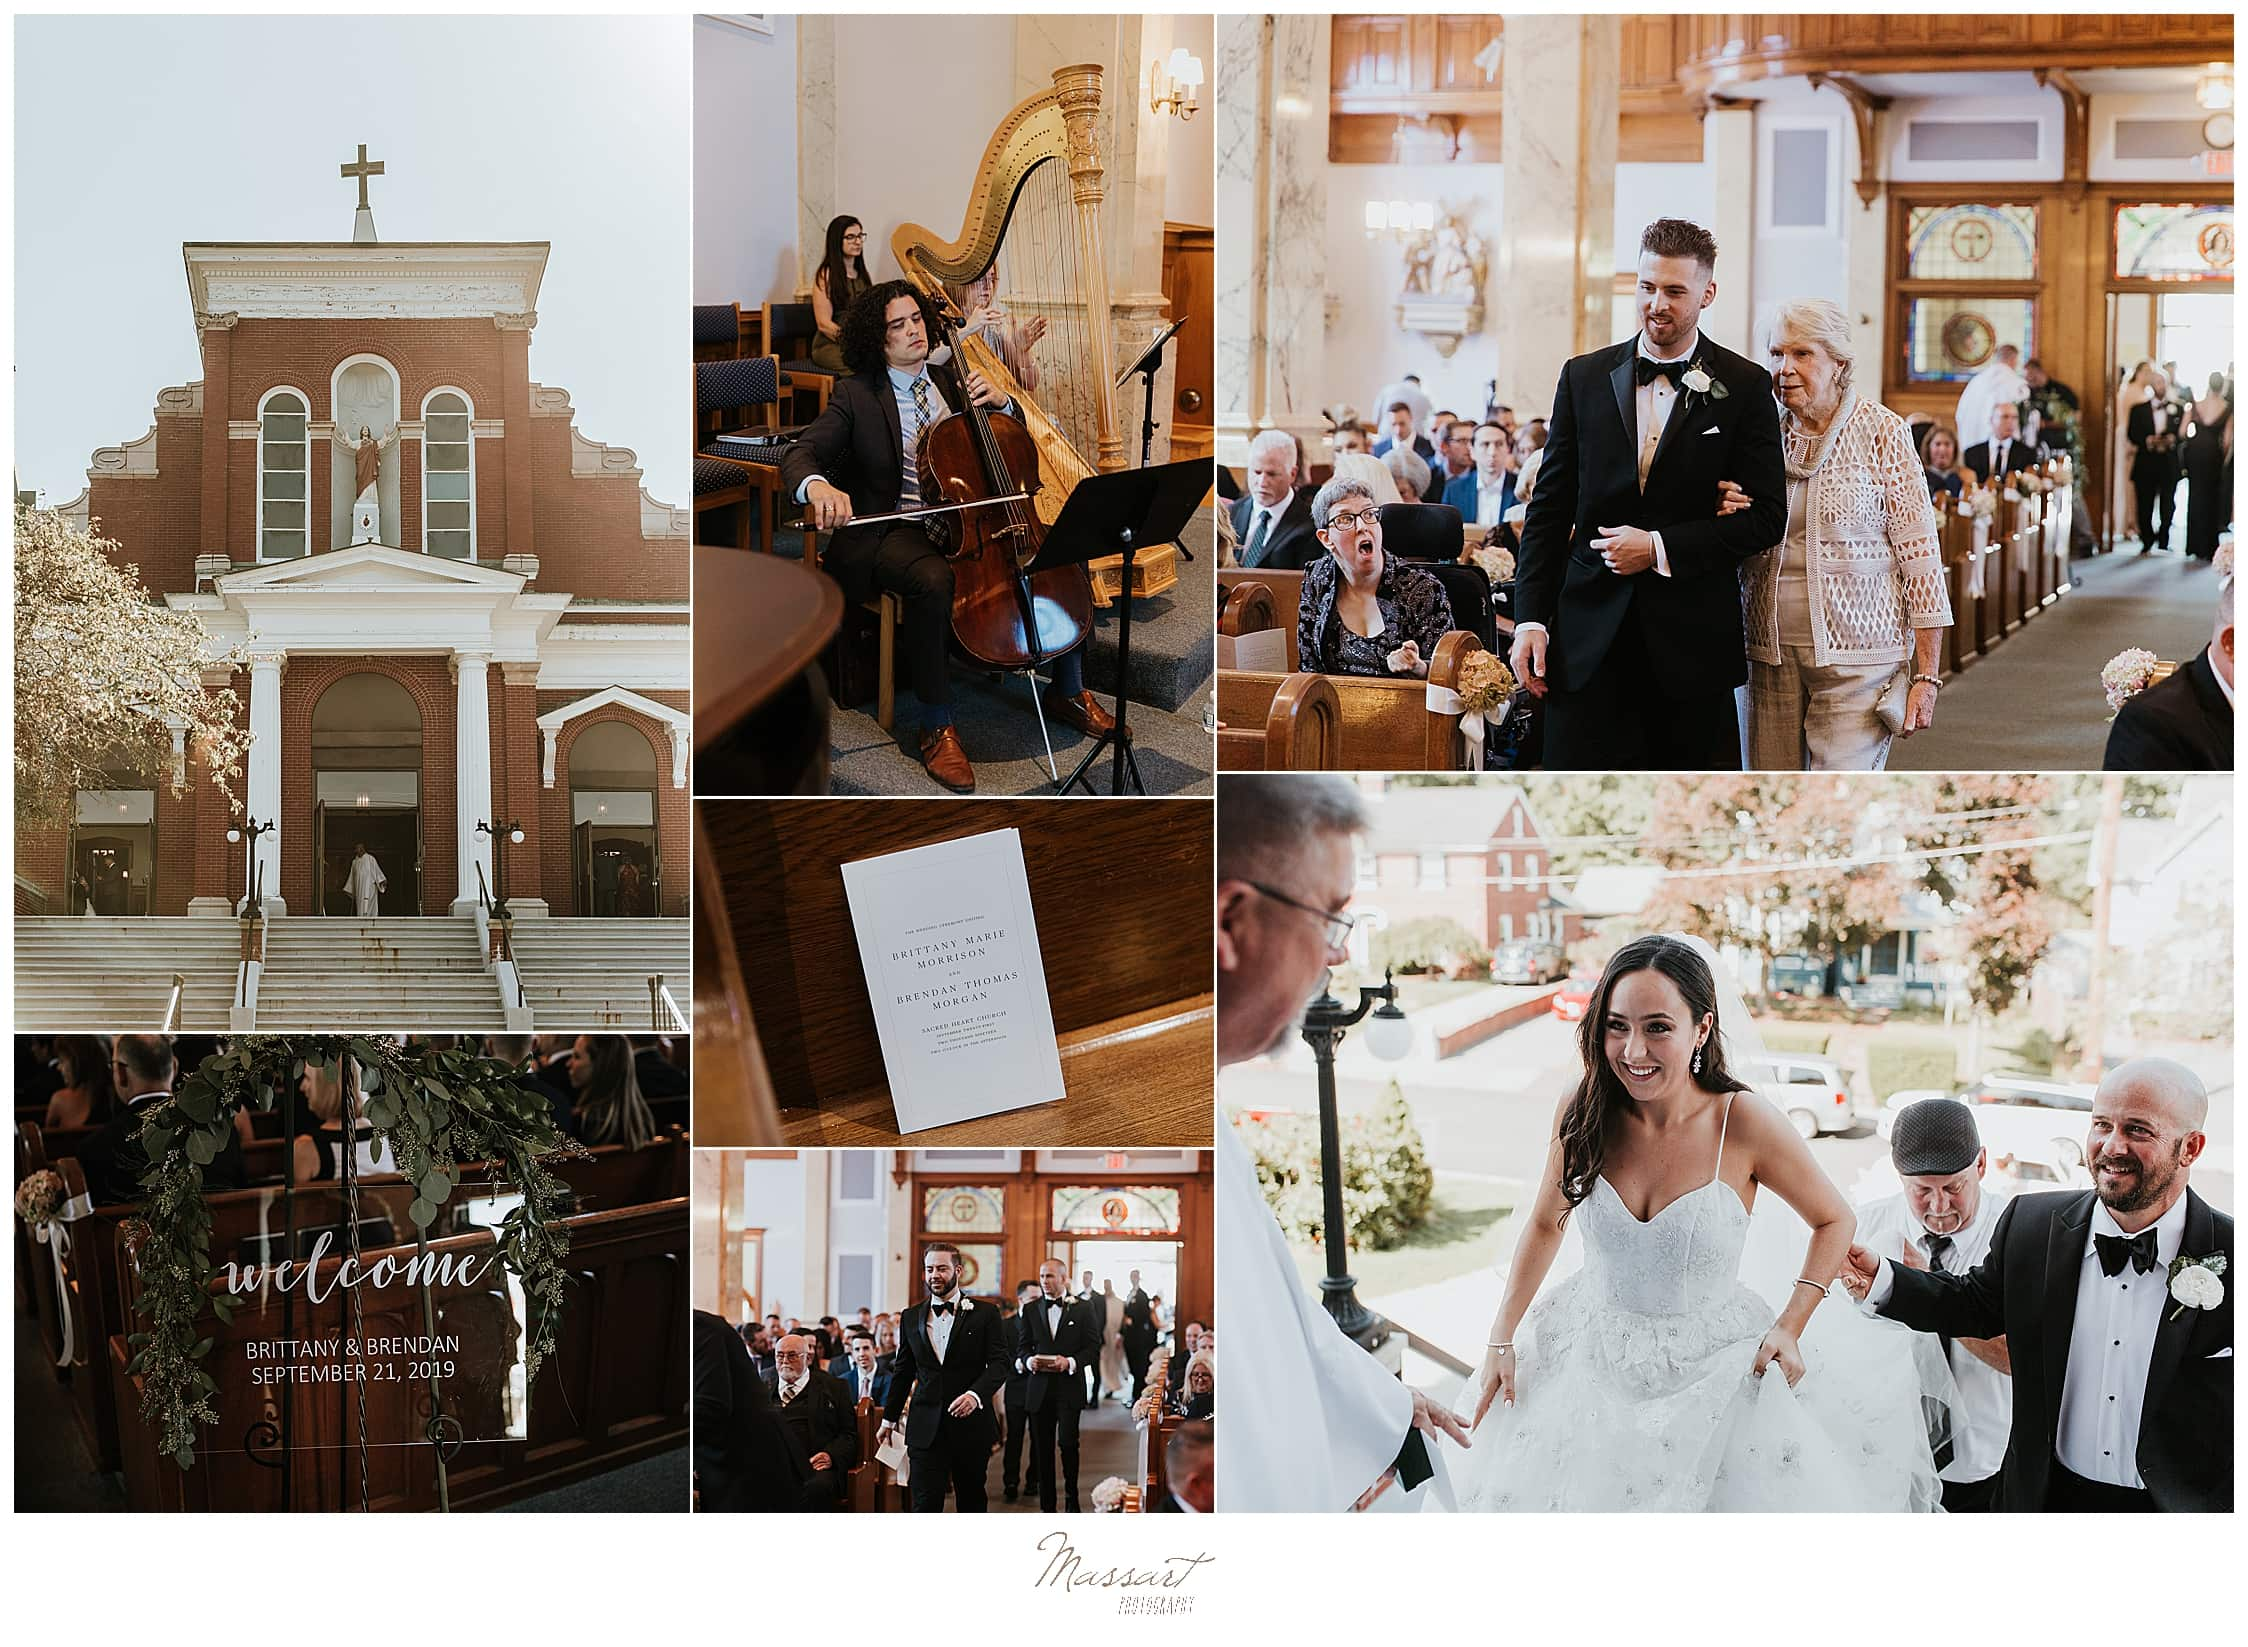 church wedding ceremony photographed by wedding photographers Massart Photography